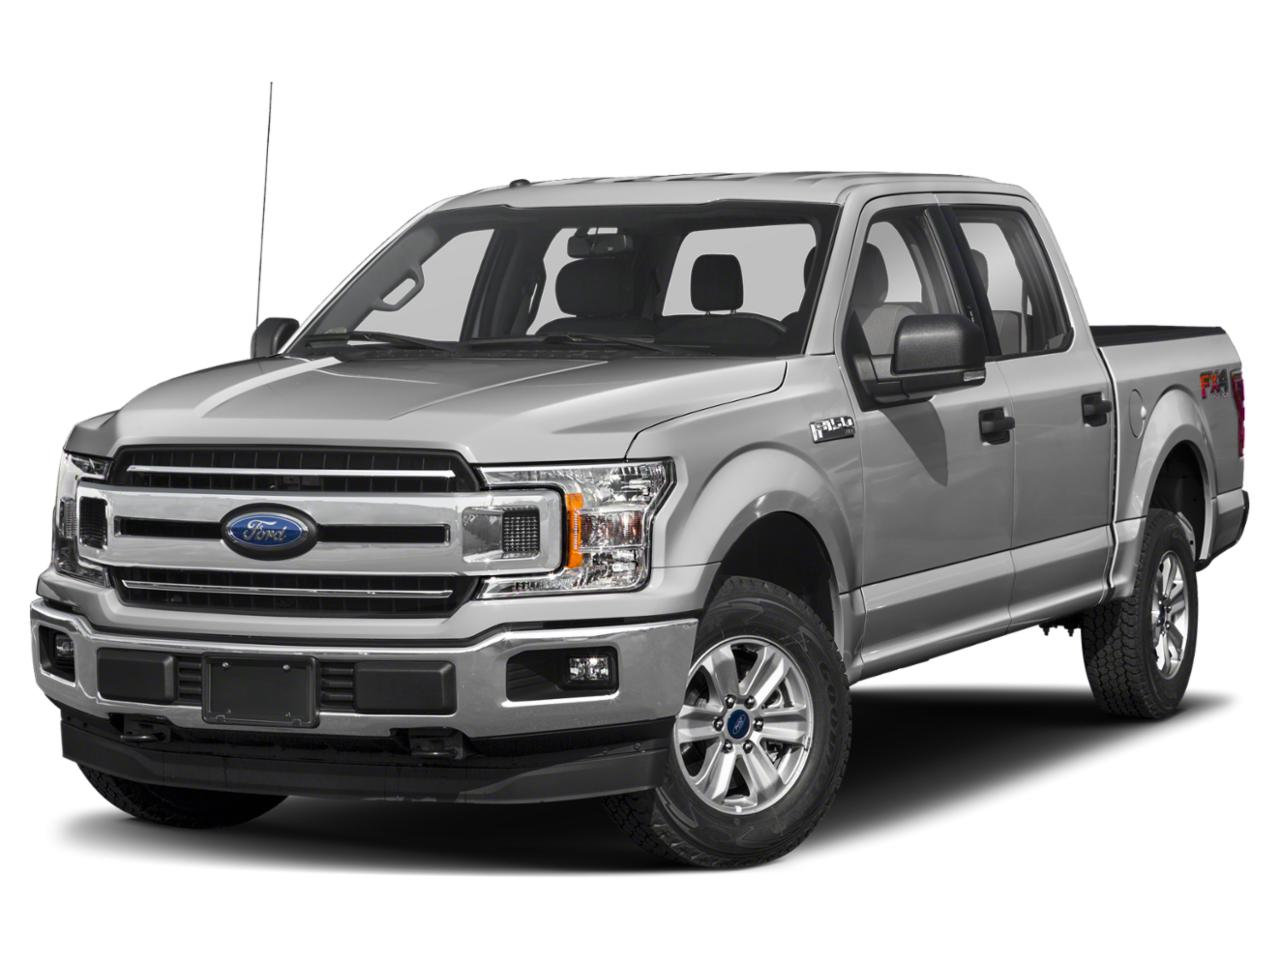 2018 Ford F-150 Vehicle Photo in Odessa, TX 79762